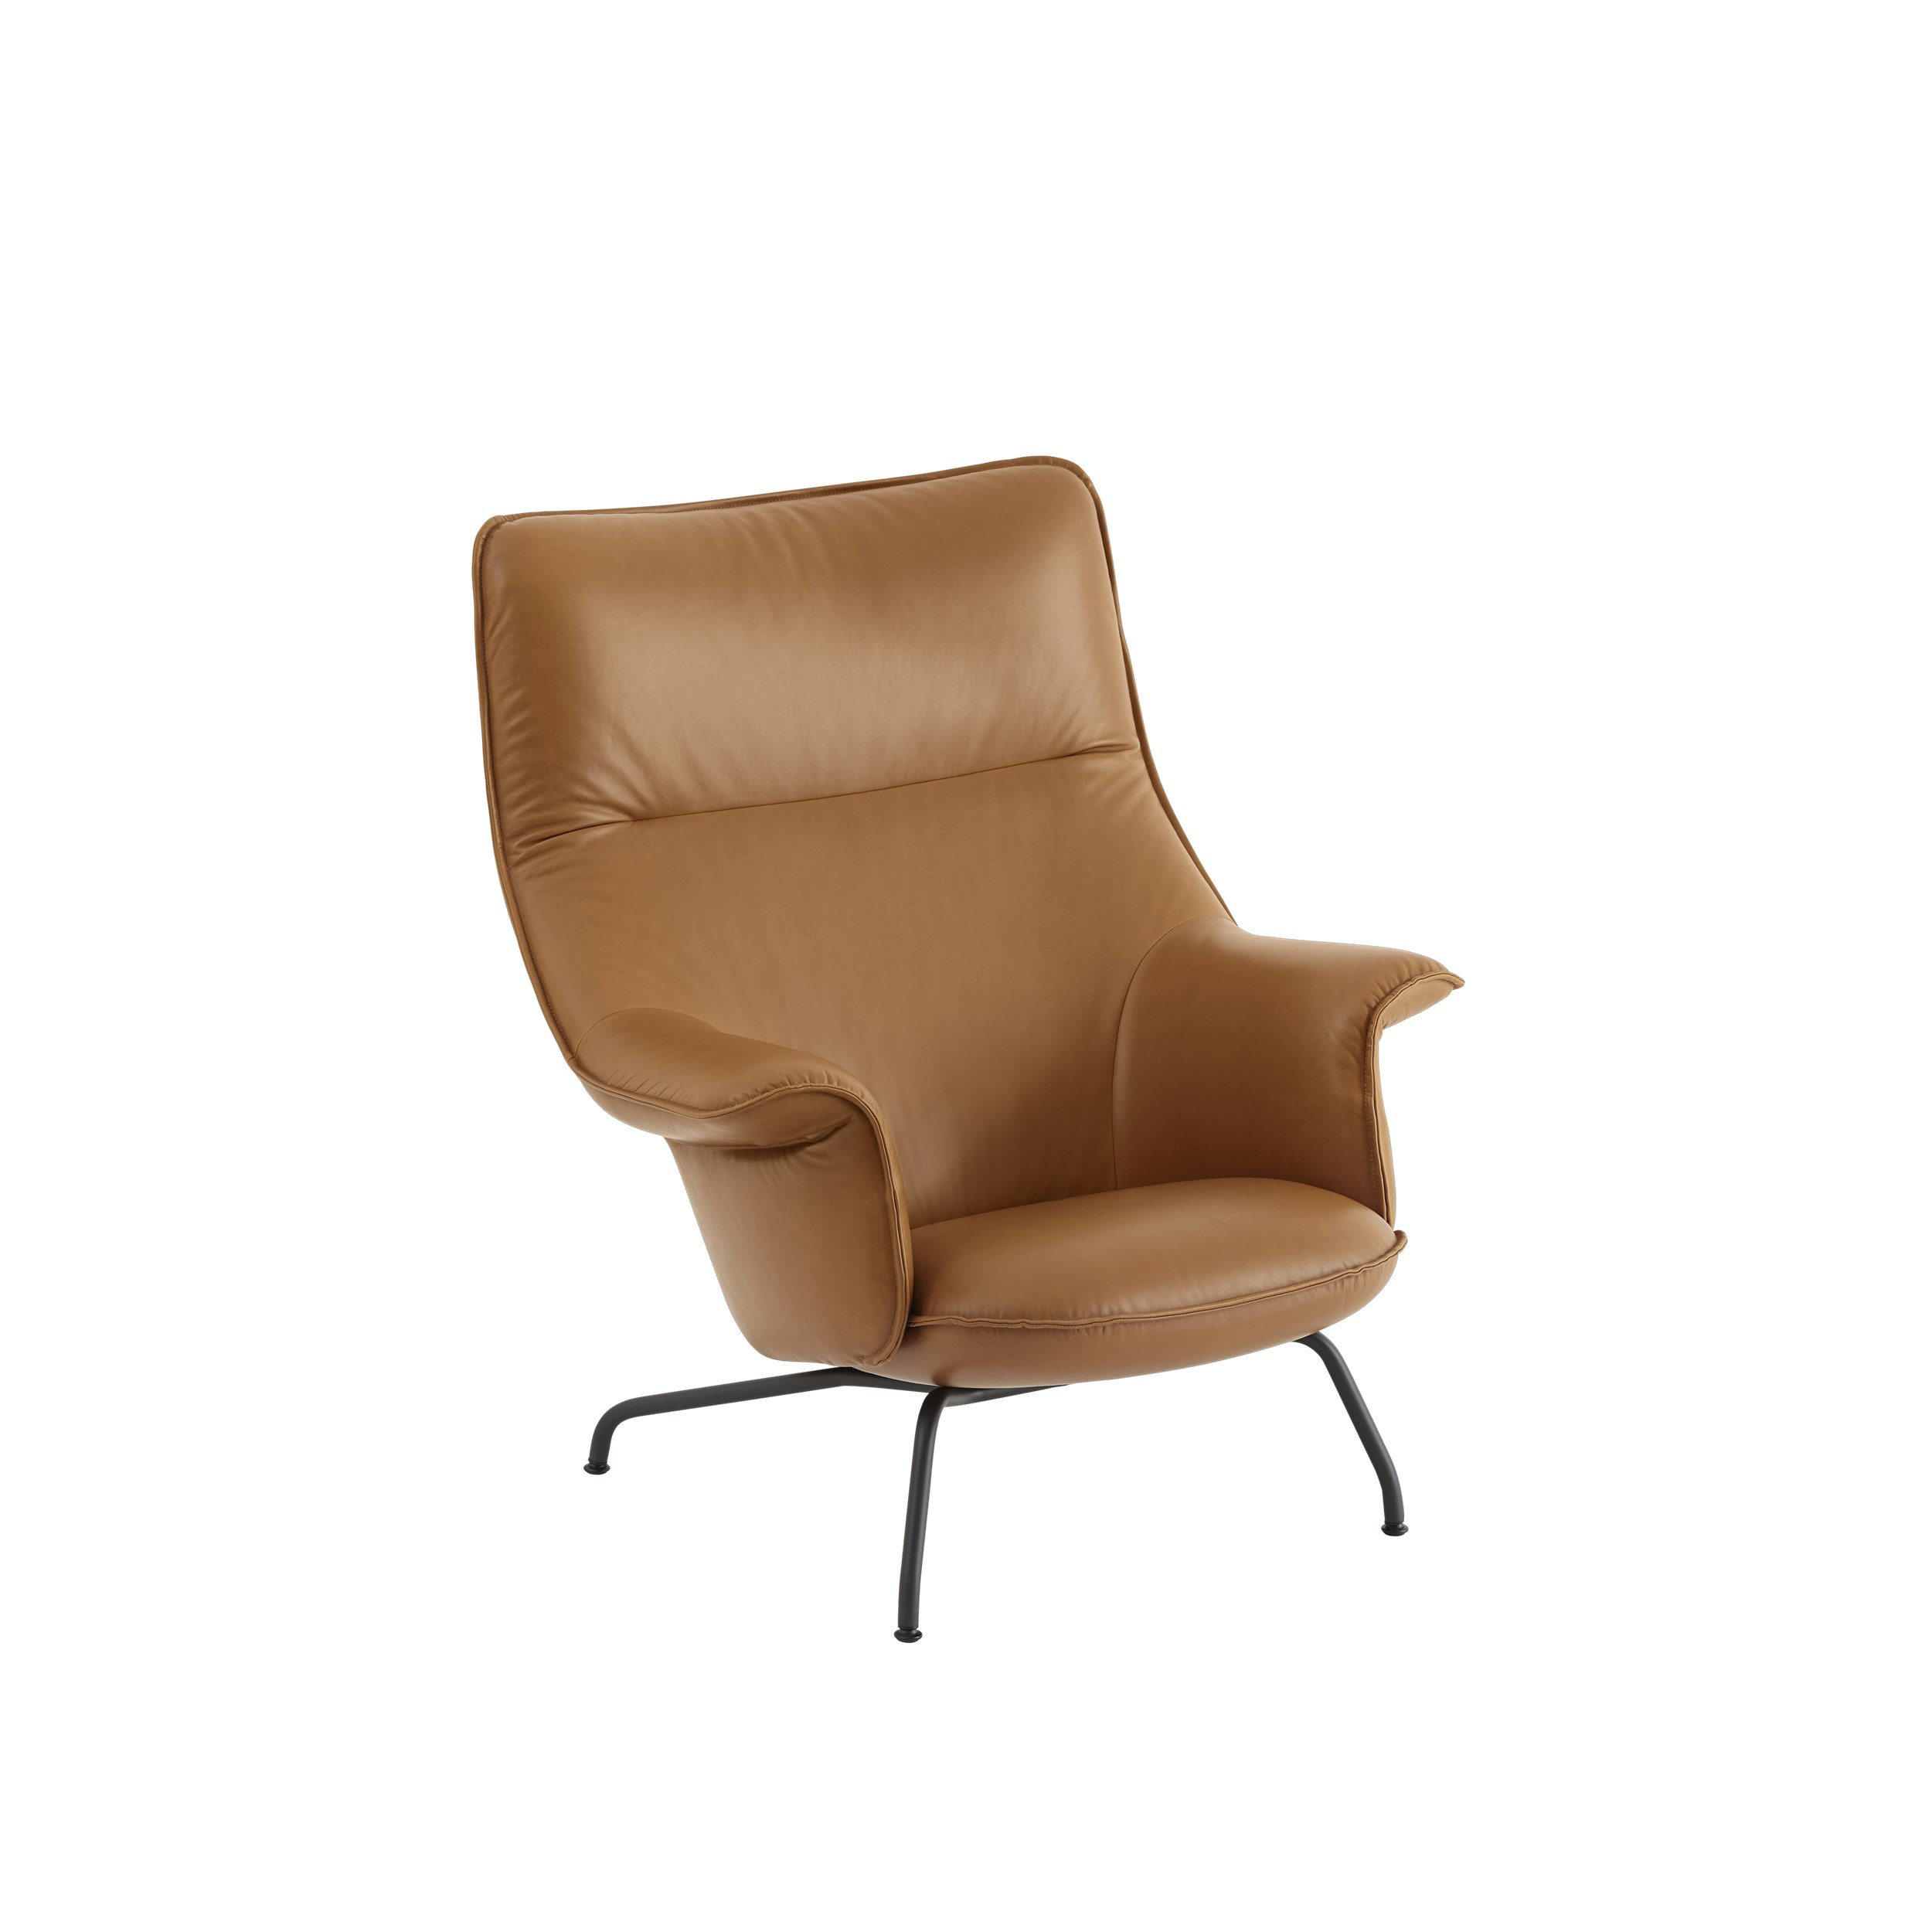 DOZE Lounge Chair Leather